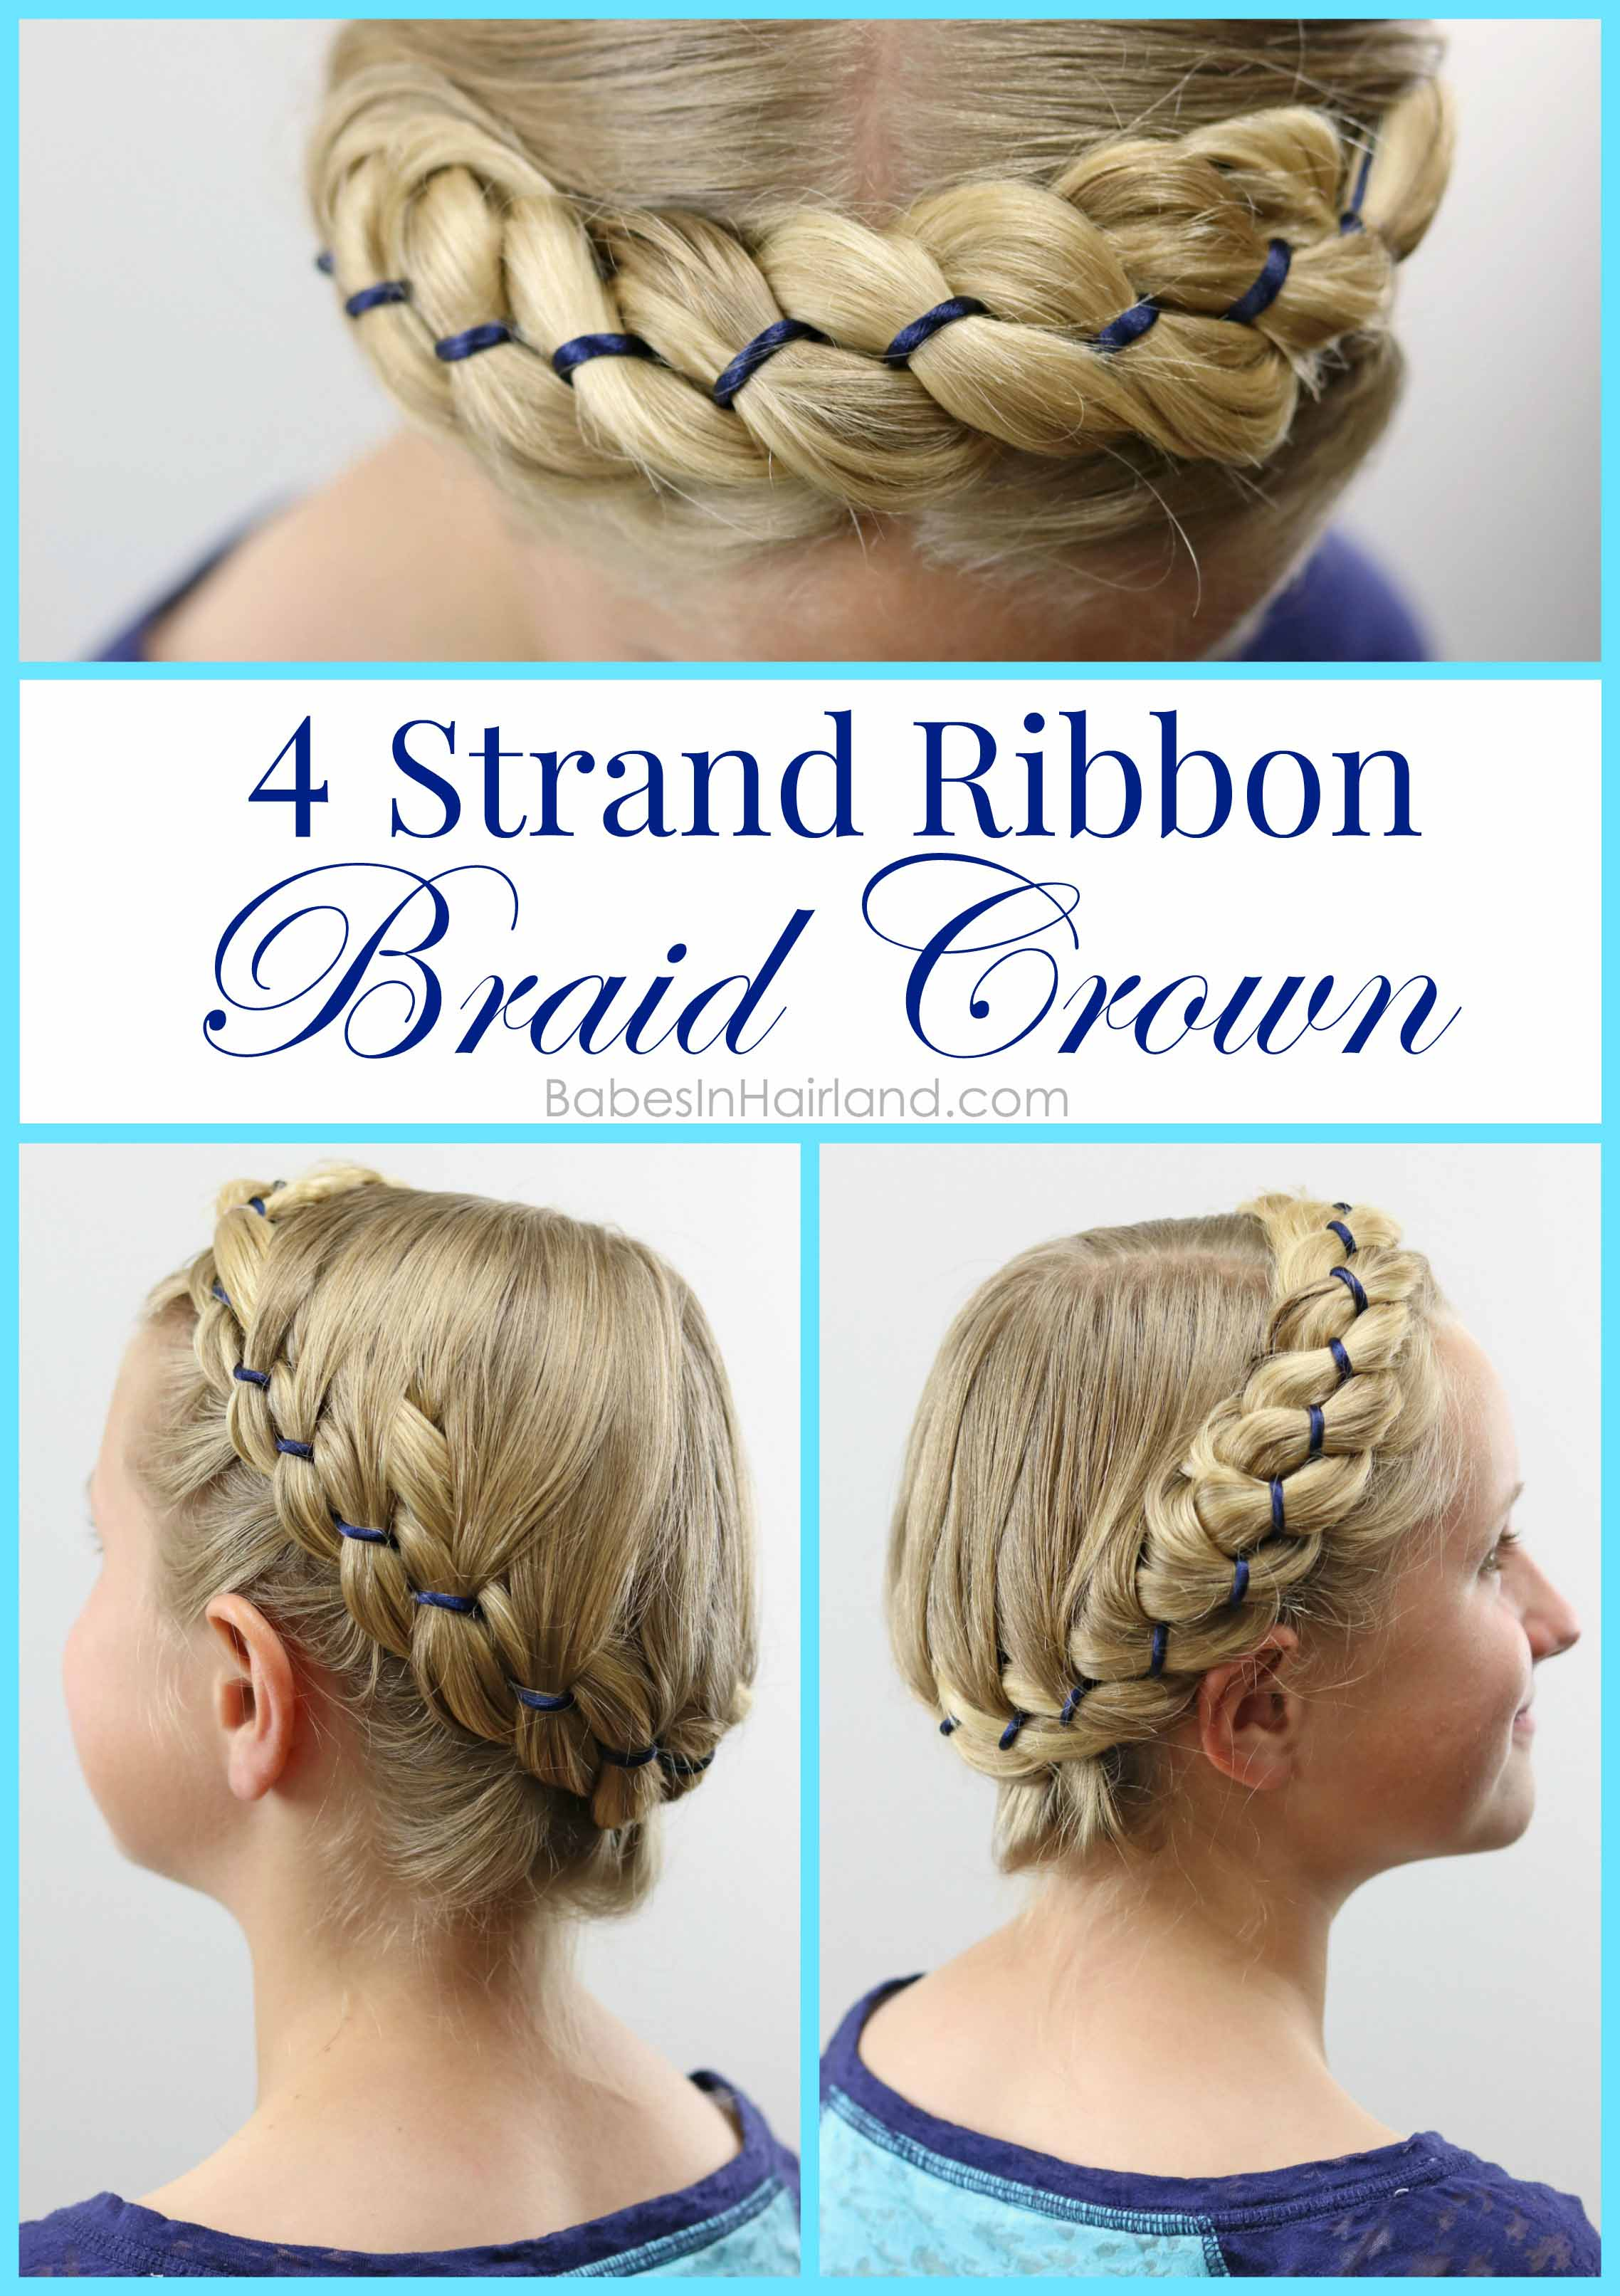 Phenomenal 4 Strand Ribbon Braid Crown Hairstyle For All Ages Hairstyles For Men Maxibearus